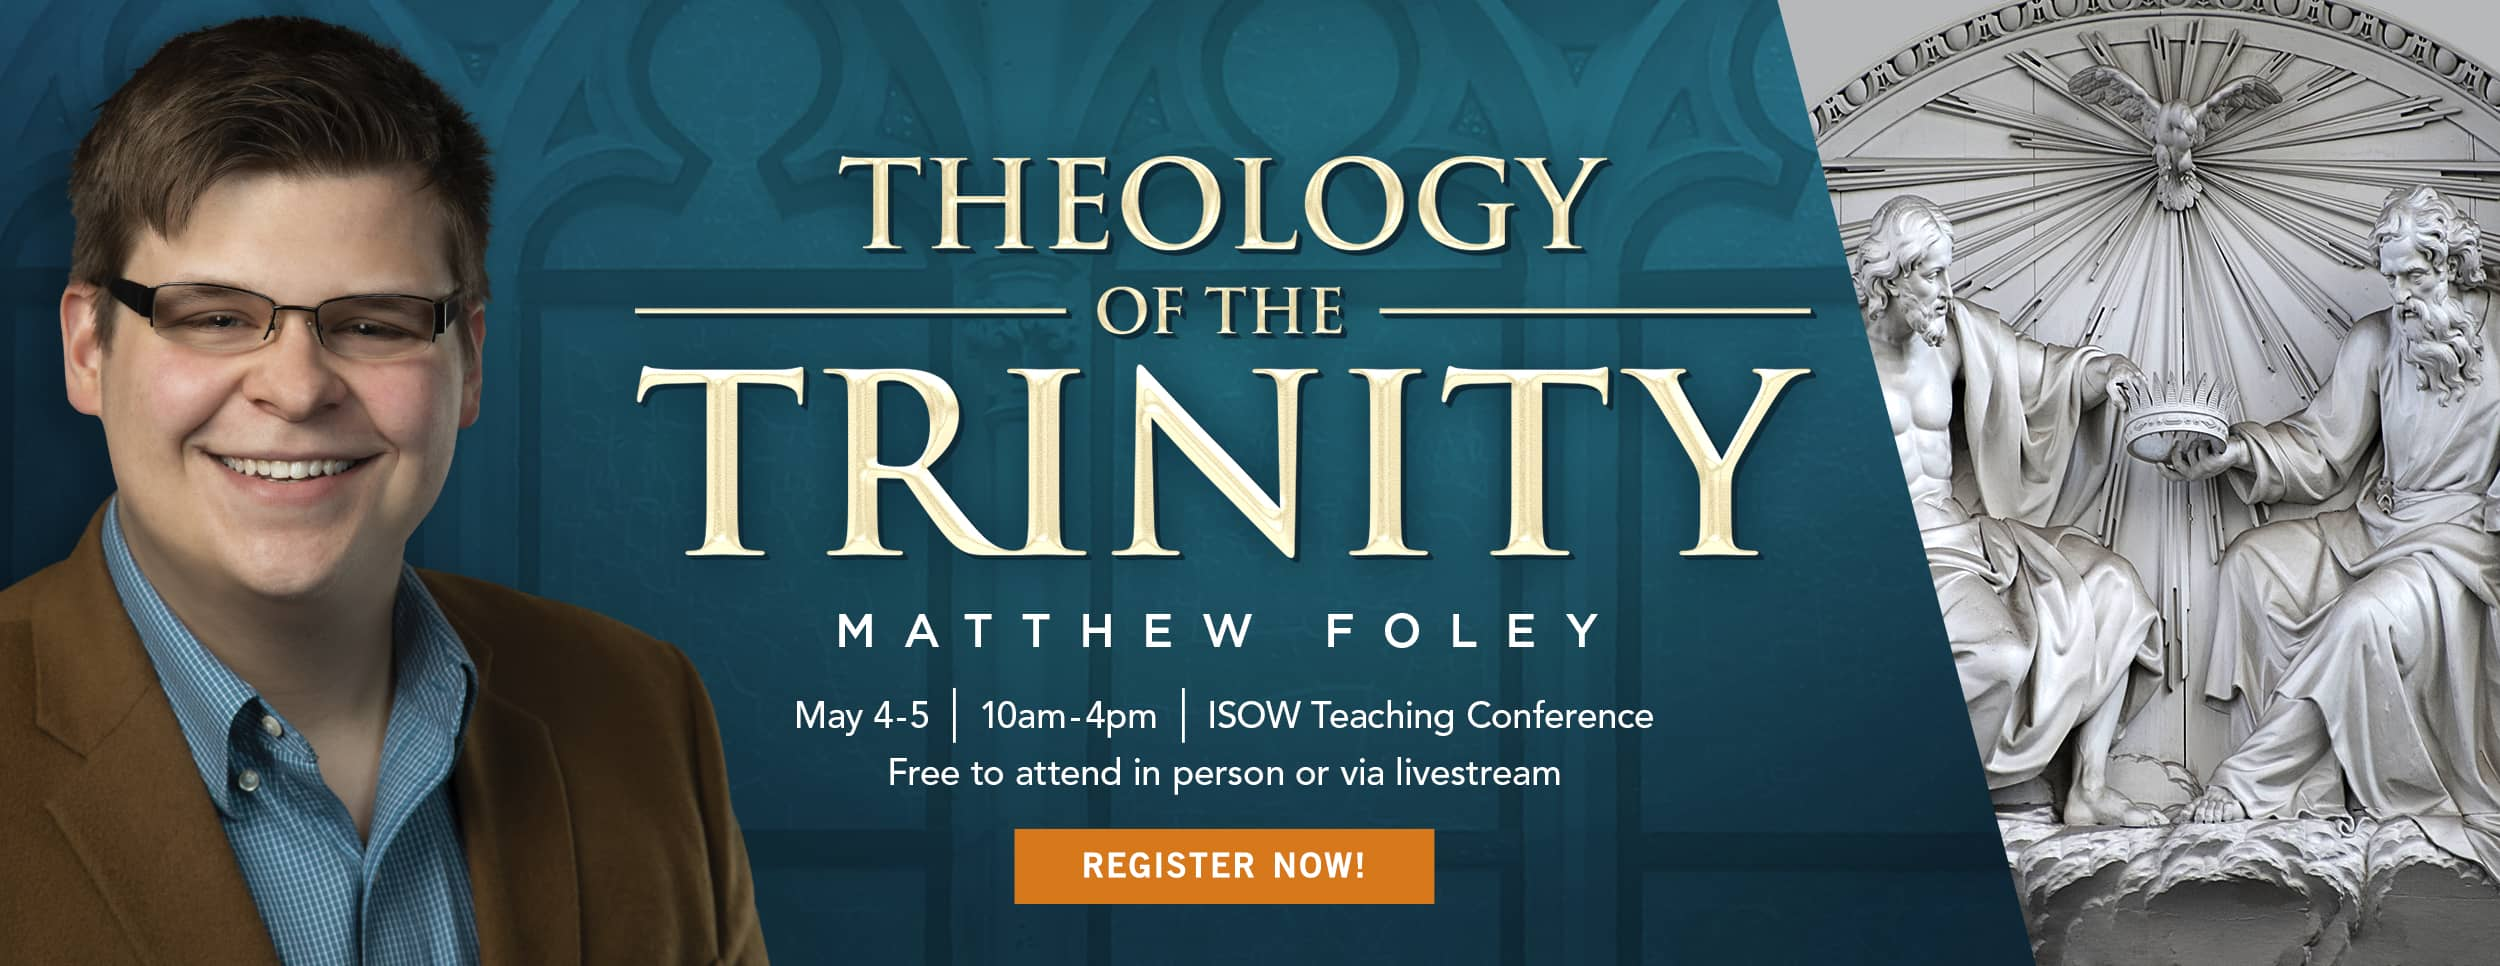 Theology of the Trinity Teaching Conference